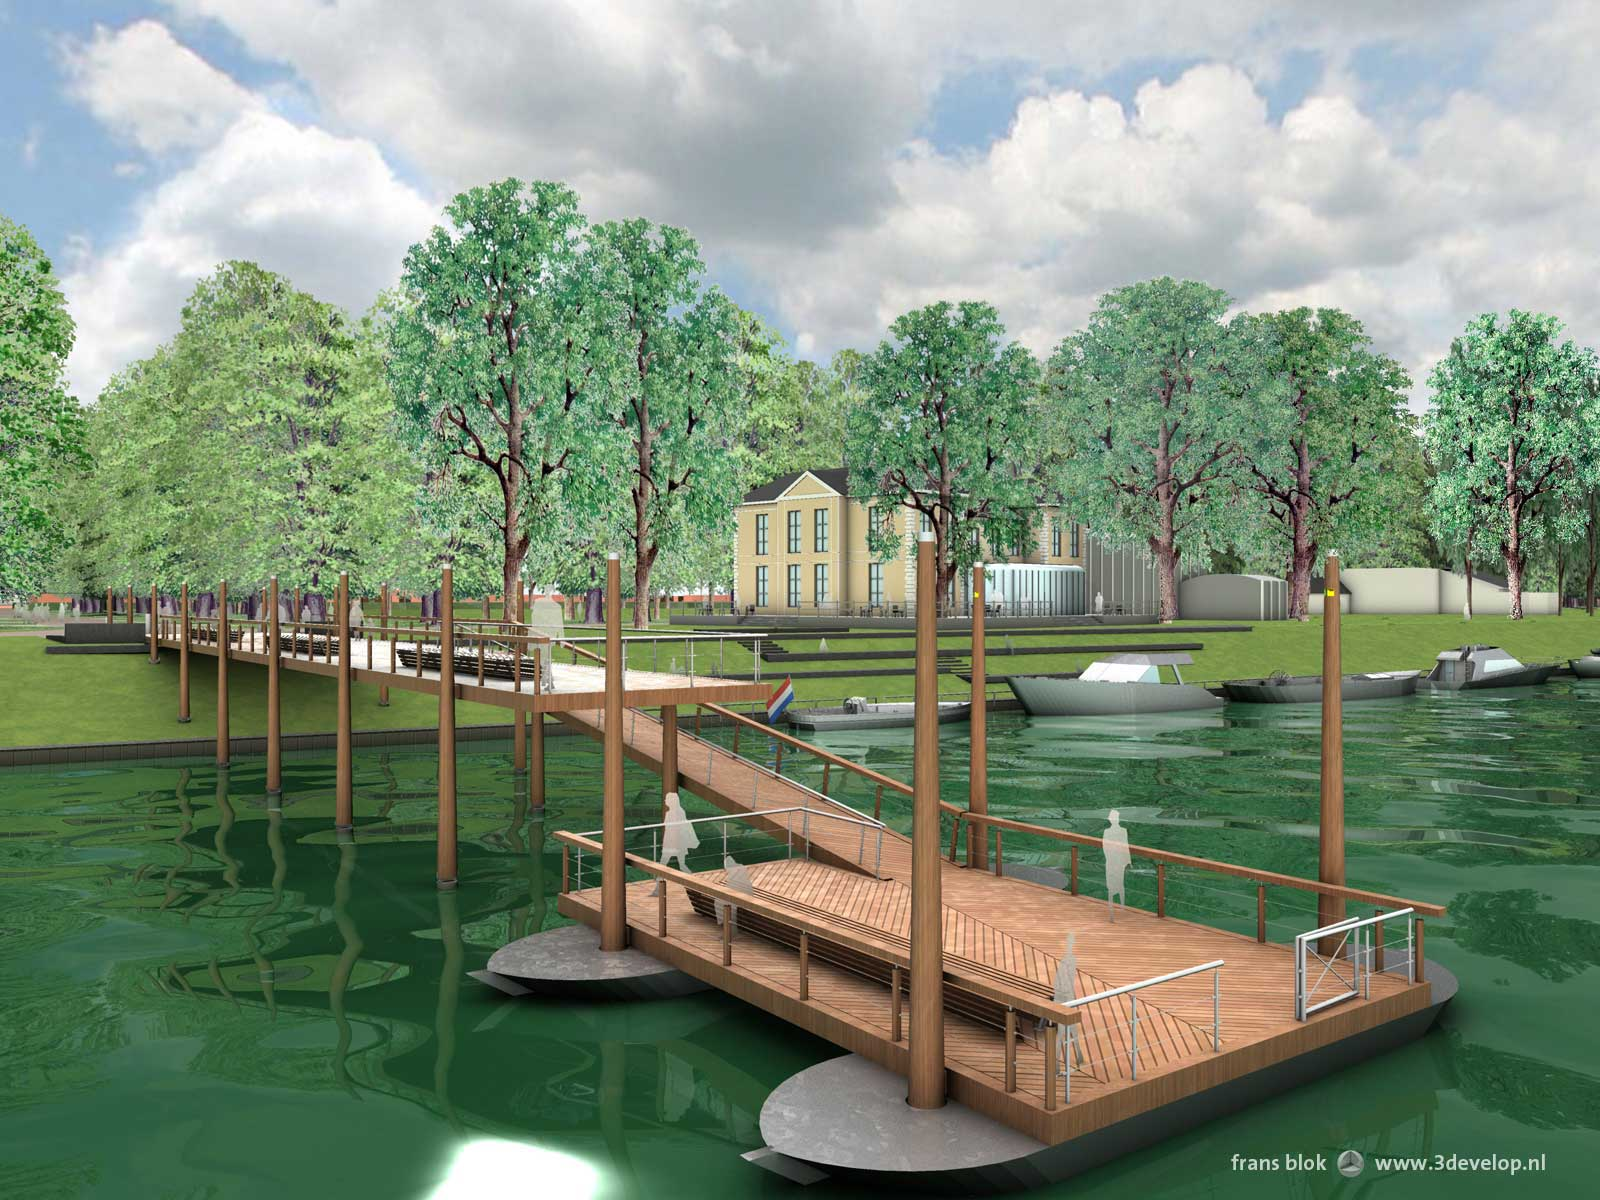 Room for the River, Deventer: artist impression of the future ferry pier.